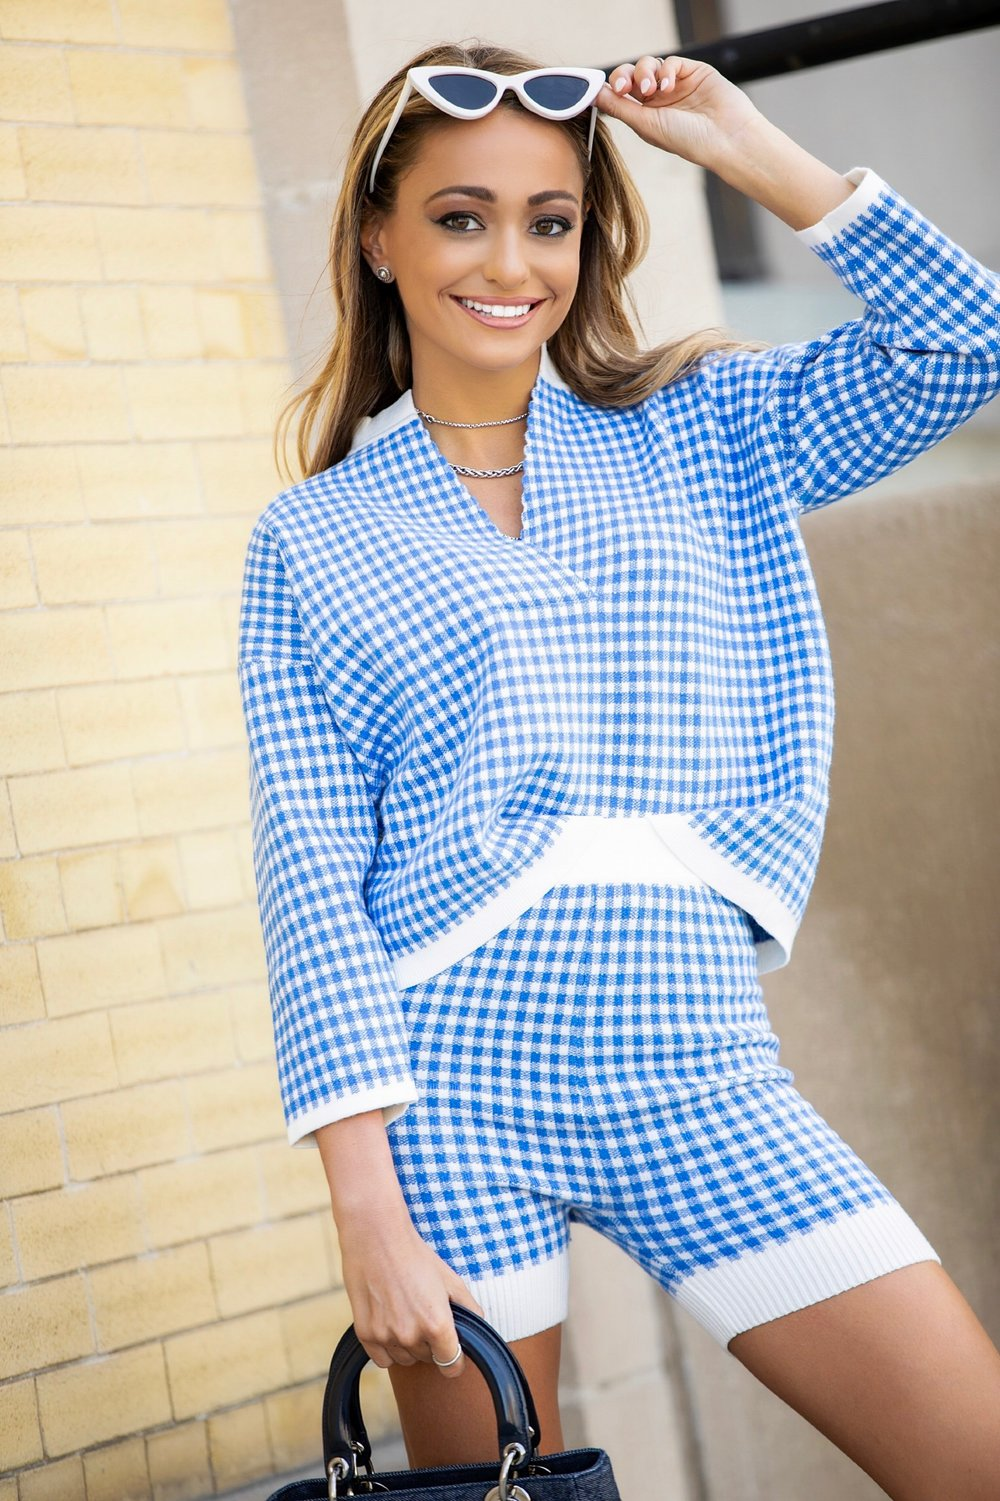 le specs x adam selman sunglasses and checkered asos white set on style blogger lauren recchia of north of manhattan